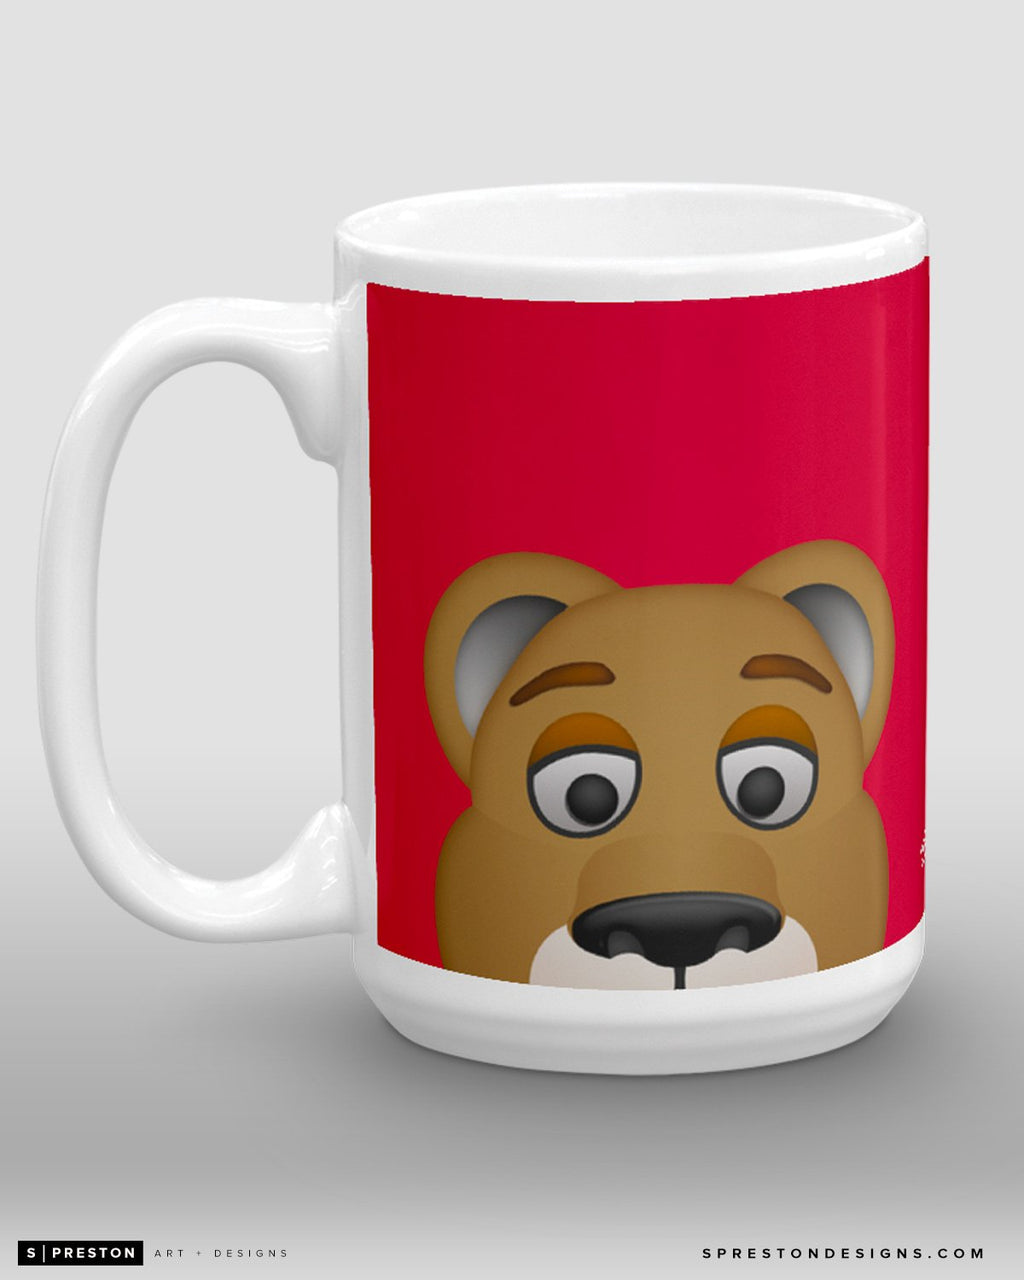 Minimalist Stanley C. Panther Coffee Mug - NHL Licensed - Florida Panthers Mascot